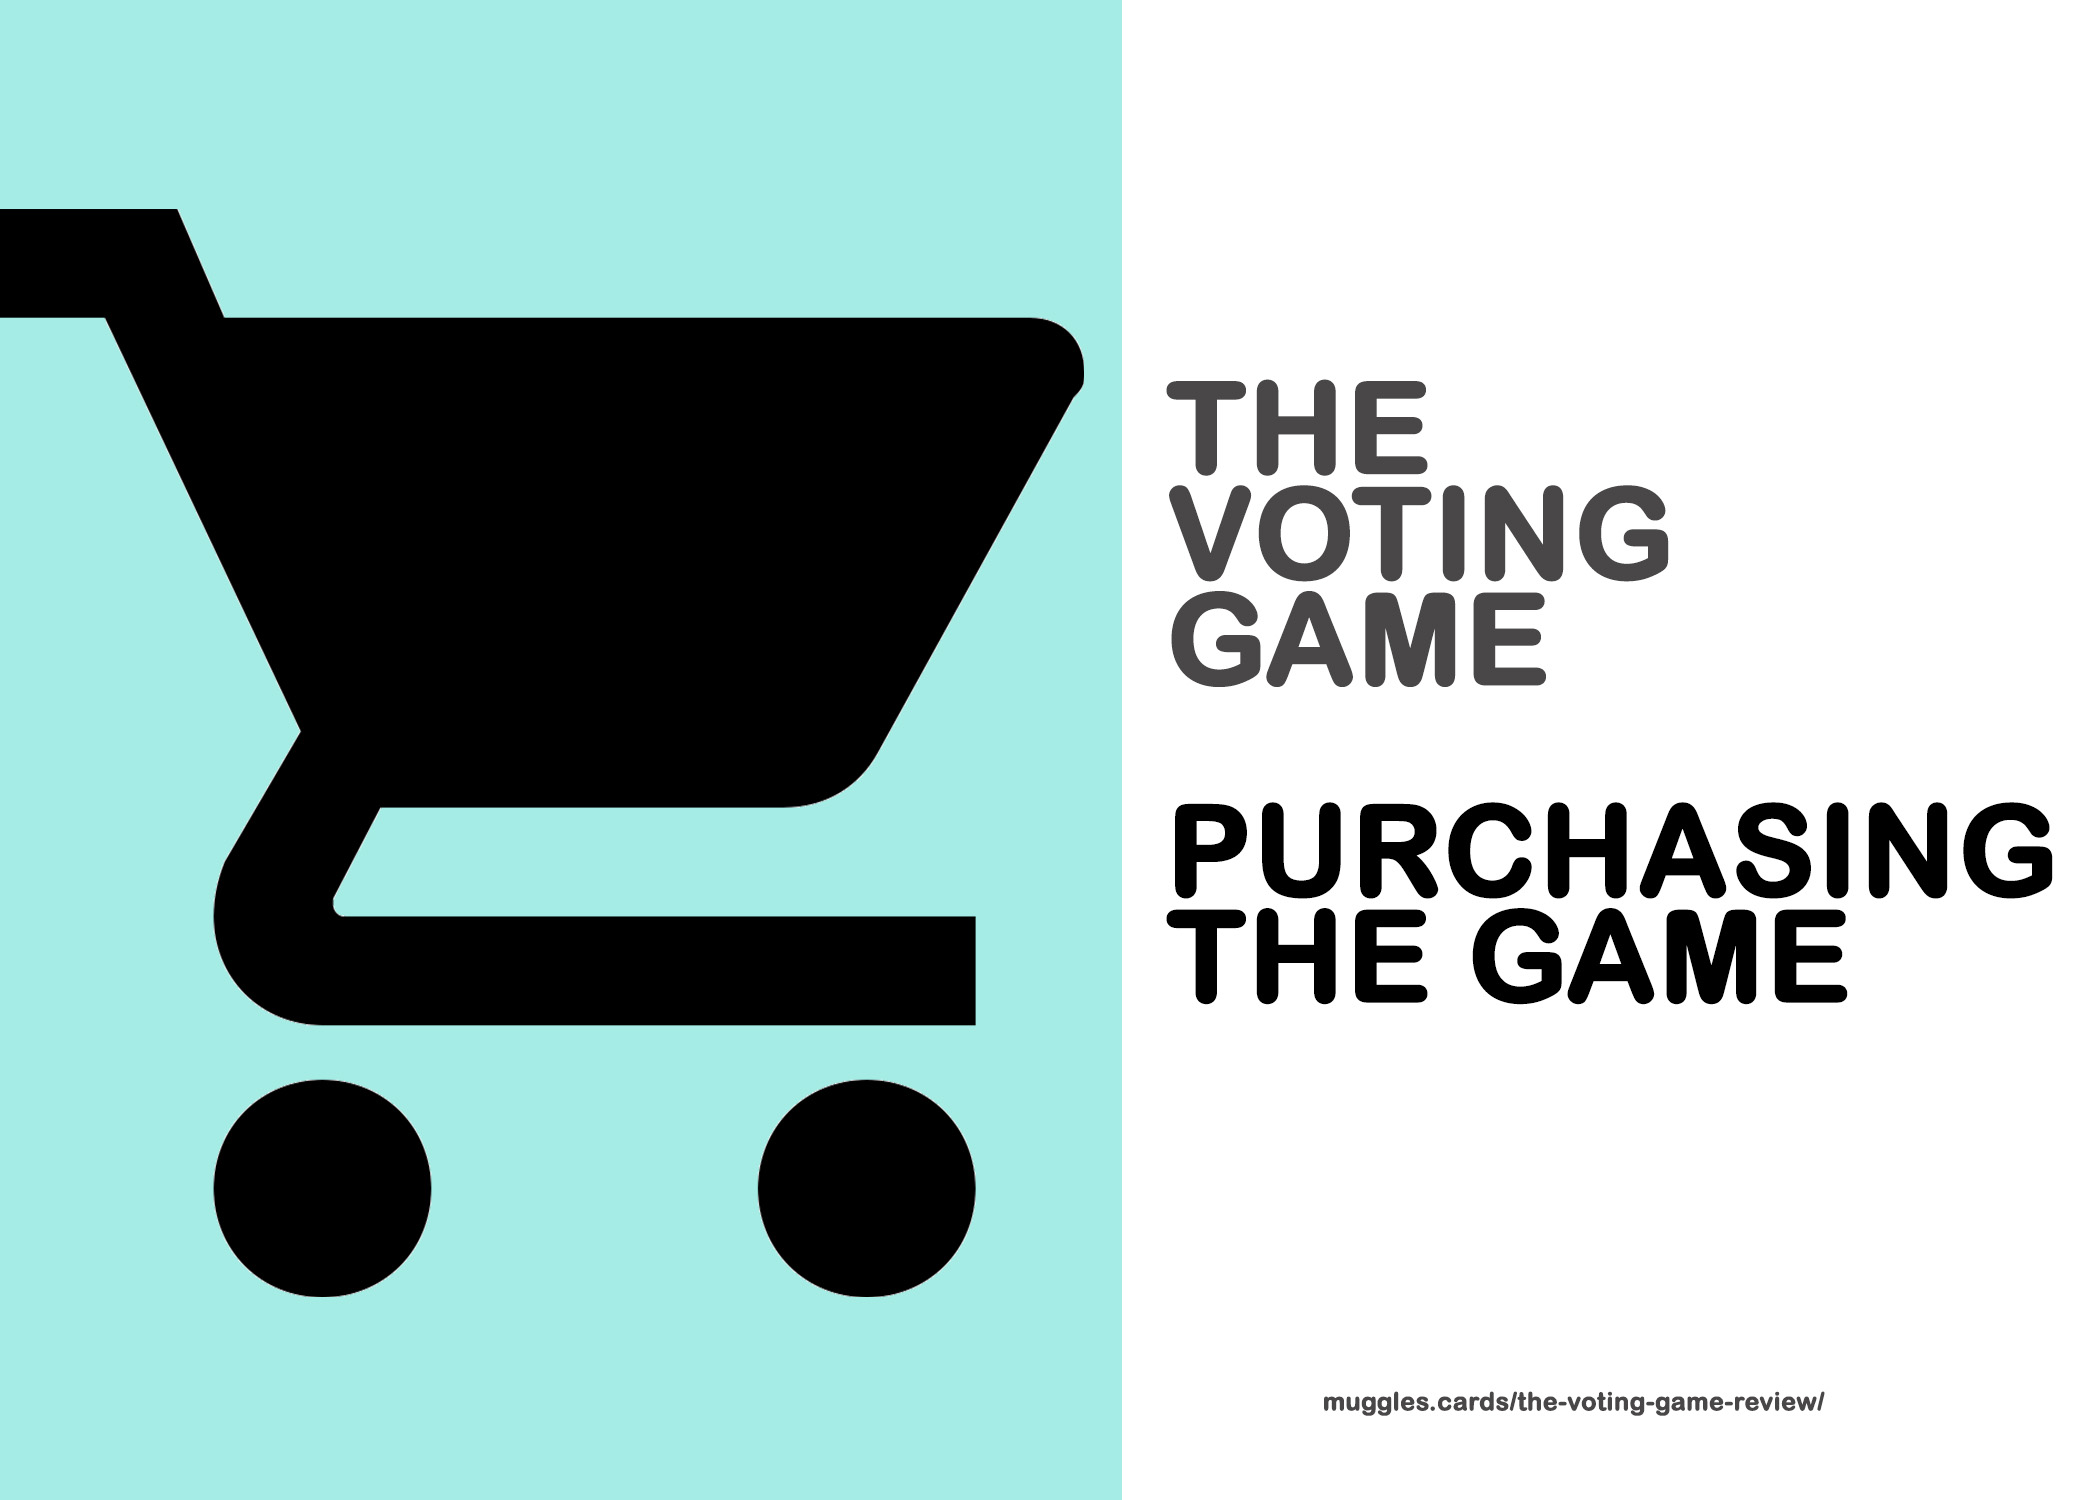 The Voting Game PURCHASE